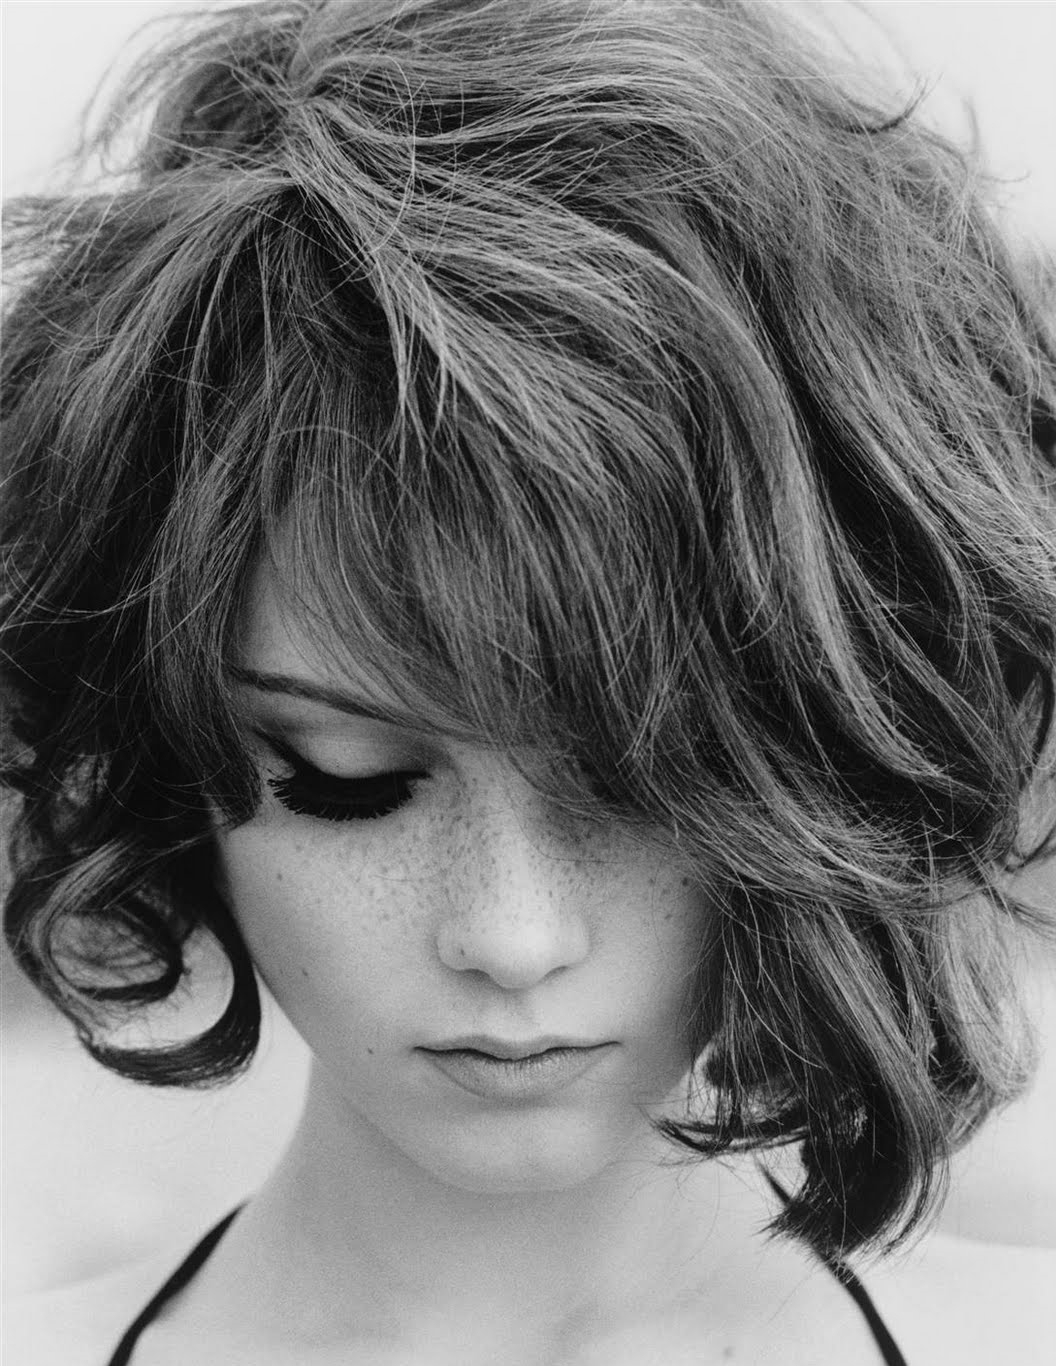 Short Hairstyles For Fat Faces 2017 – Hairstyles Ideas With Regard To Short Haircuts For Fat Oval Faces (View 18 of 25)